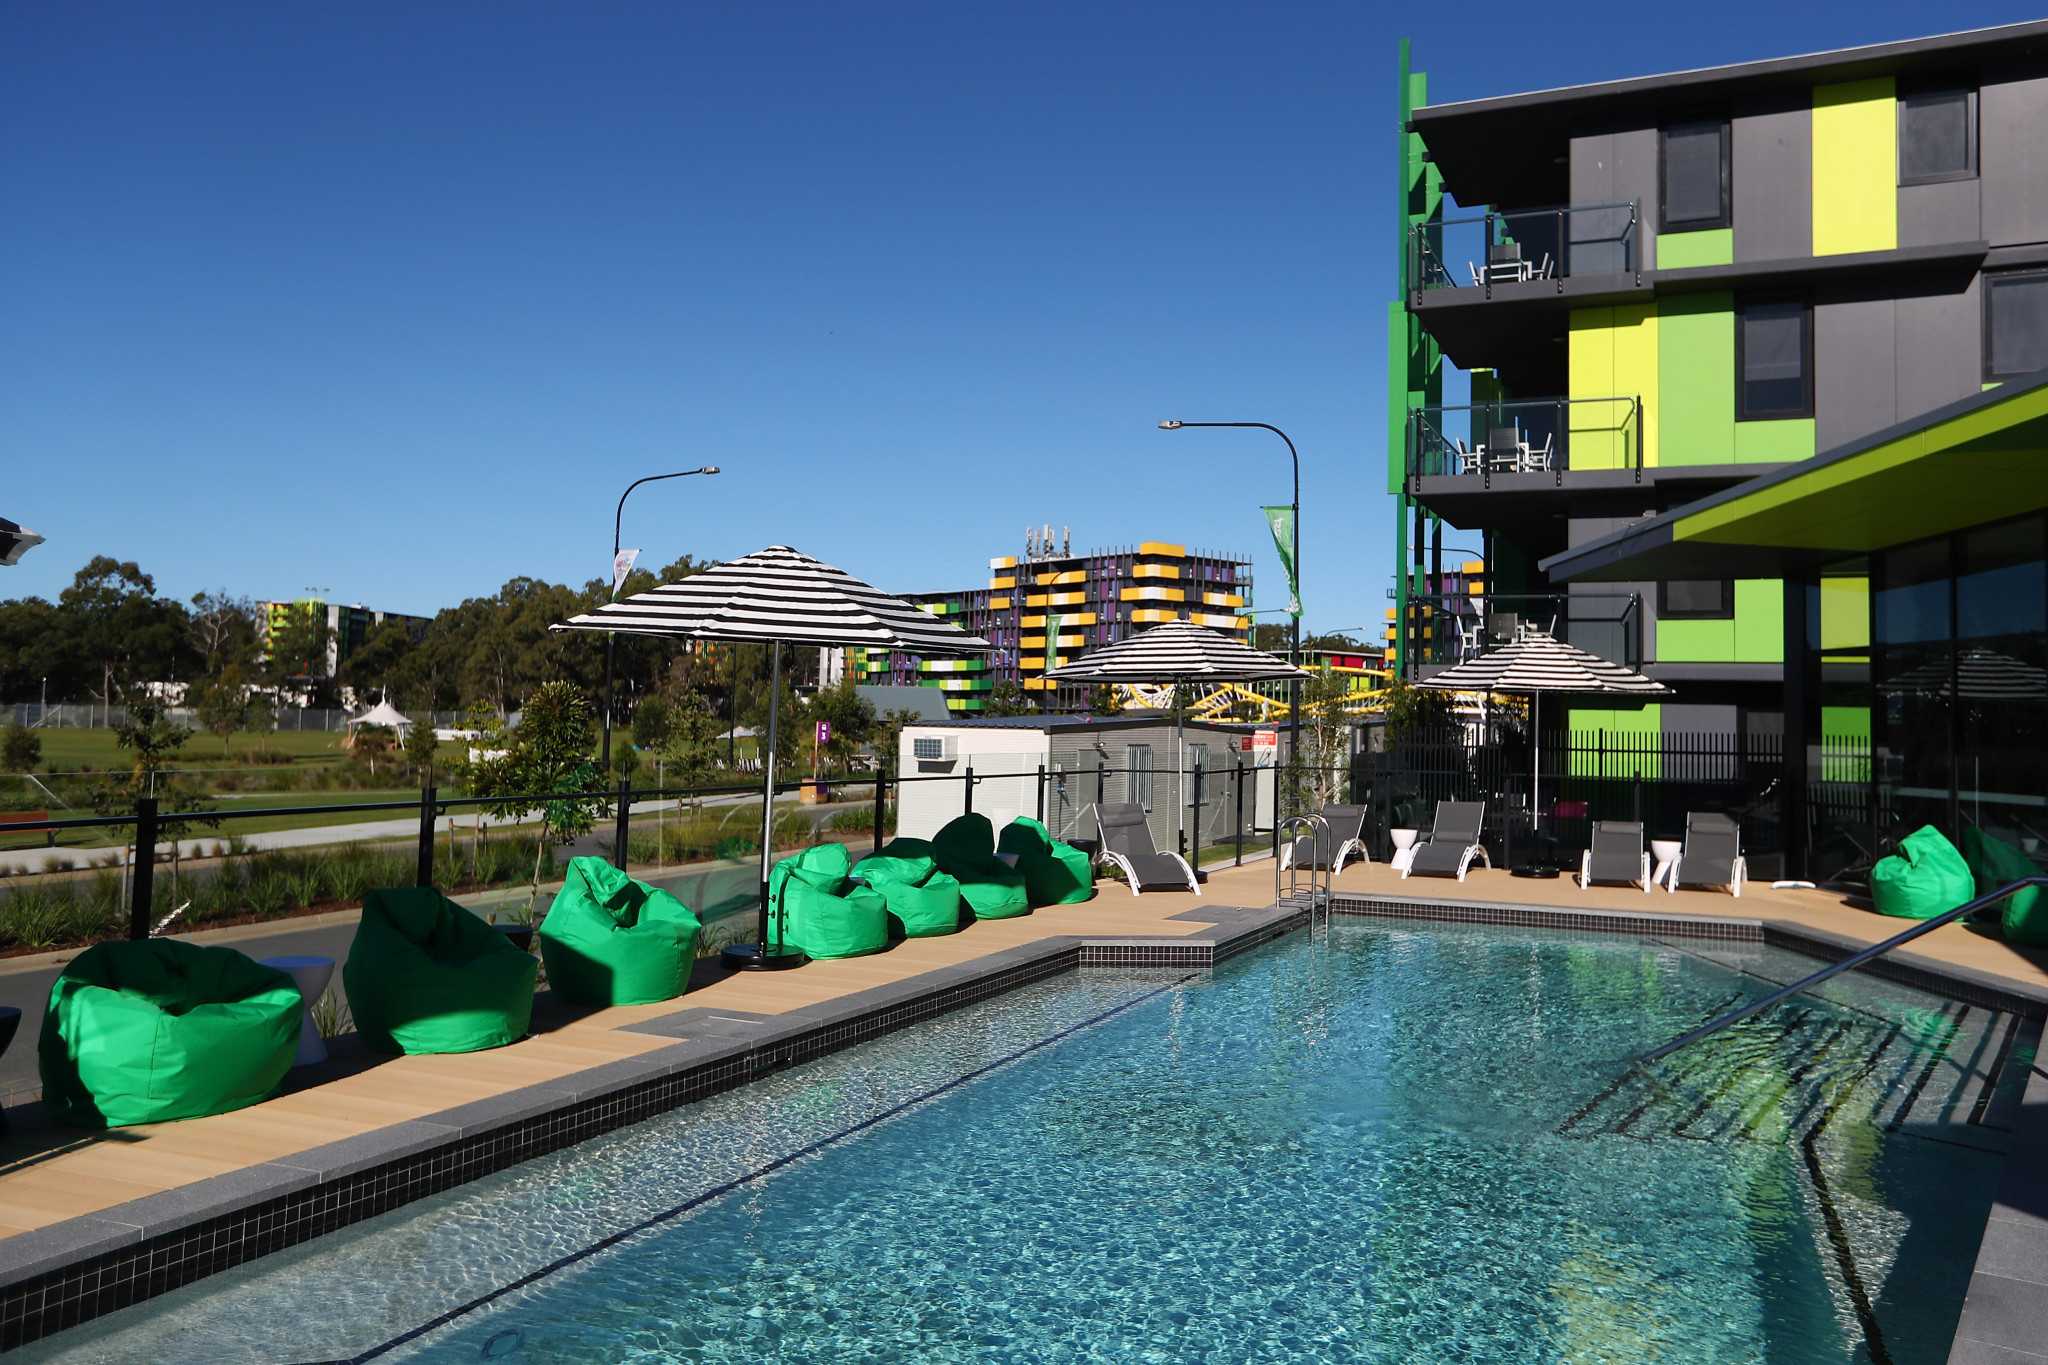 BWS joins Woolworths as Gold Coast 2018 Athletes' Village tenant